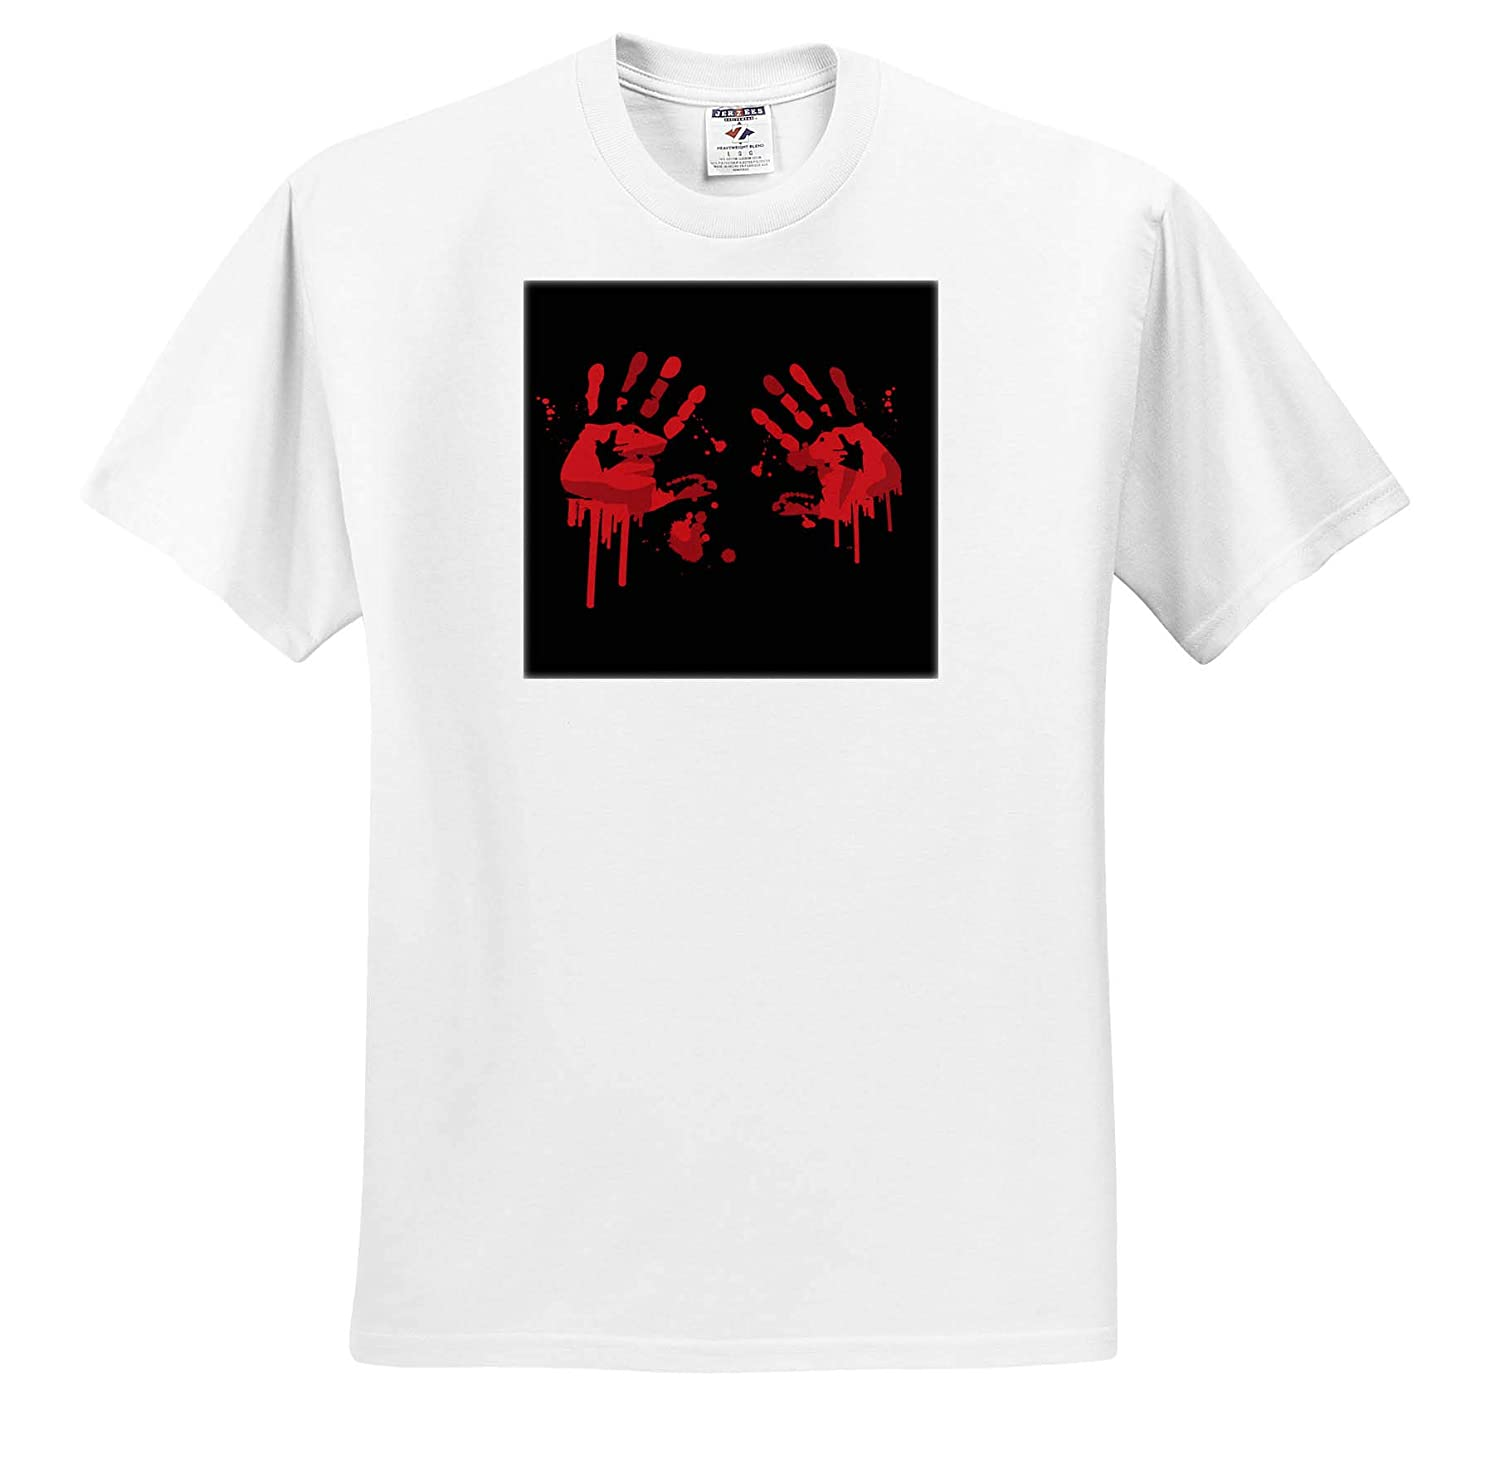 Two Funny Blood Hands for Horror Fans and Lovers Halloween Adult T-Shirt XL ts/_318912 3dRose Sven Herkenrath Funny